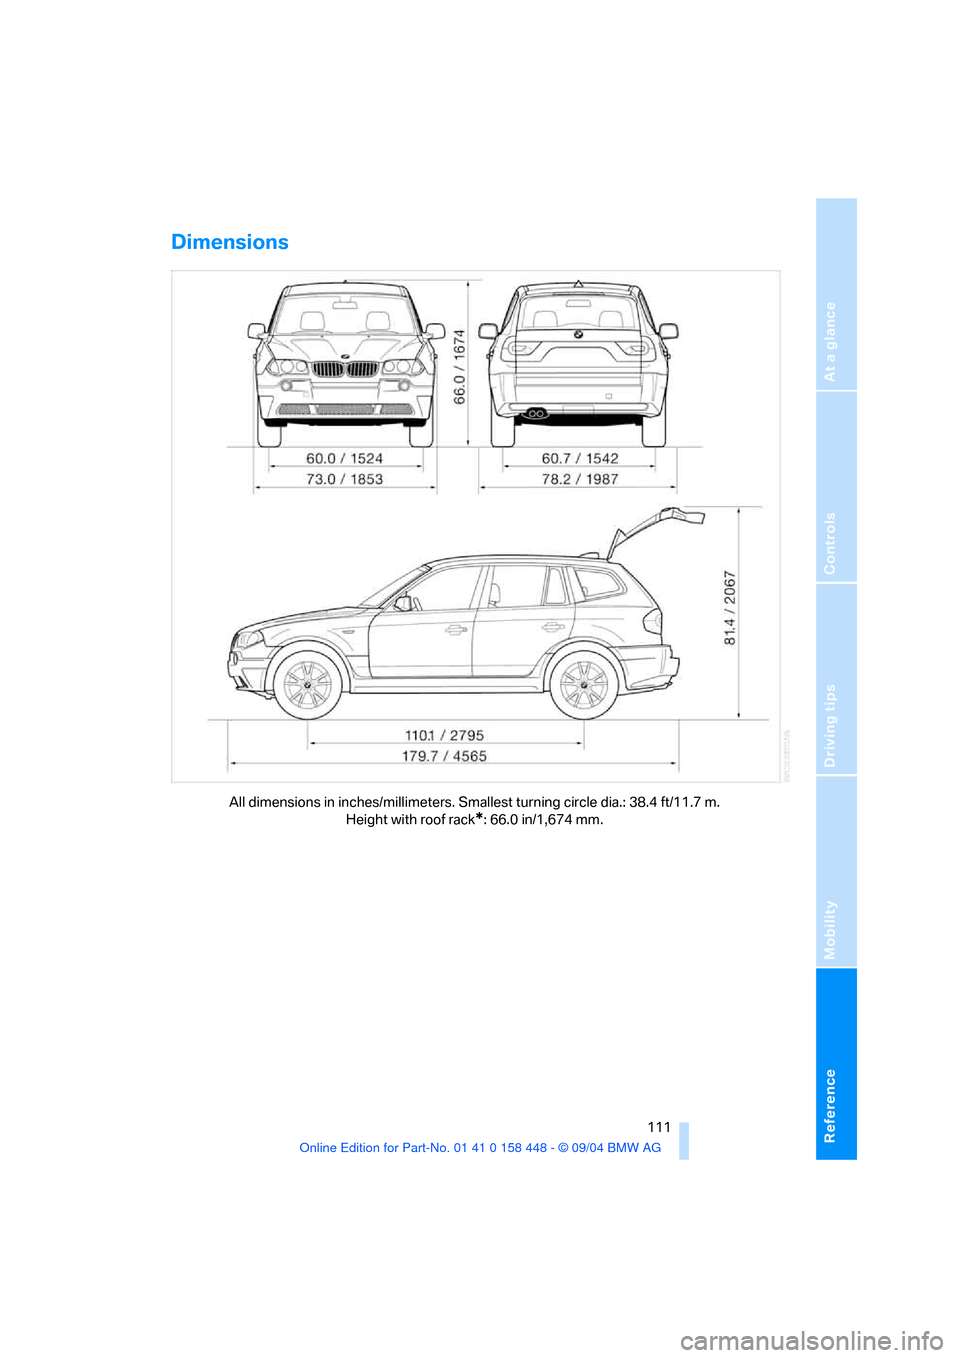 BMW X3 3.0I 2005 E83 Owner's Manual